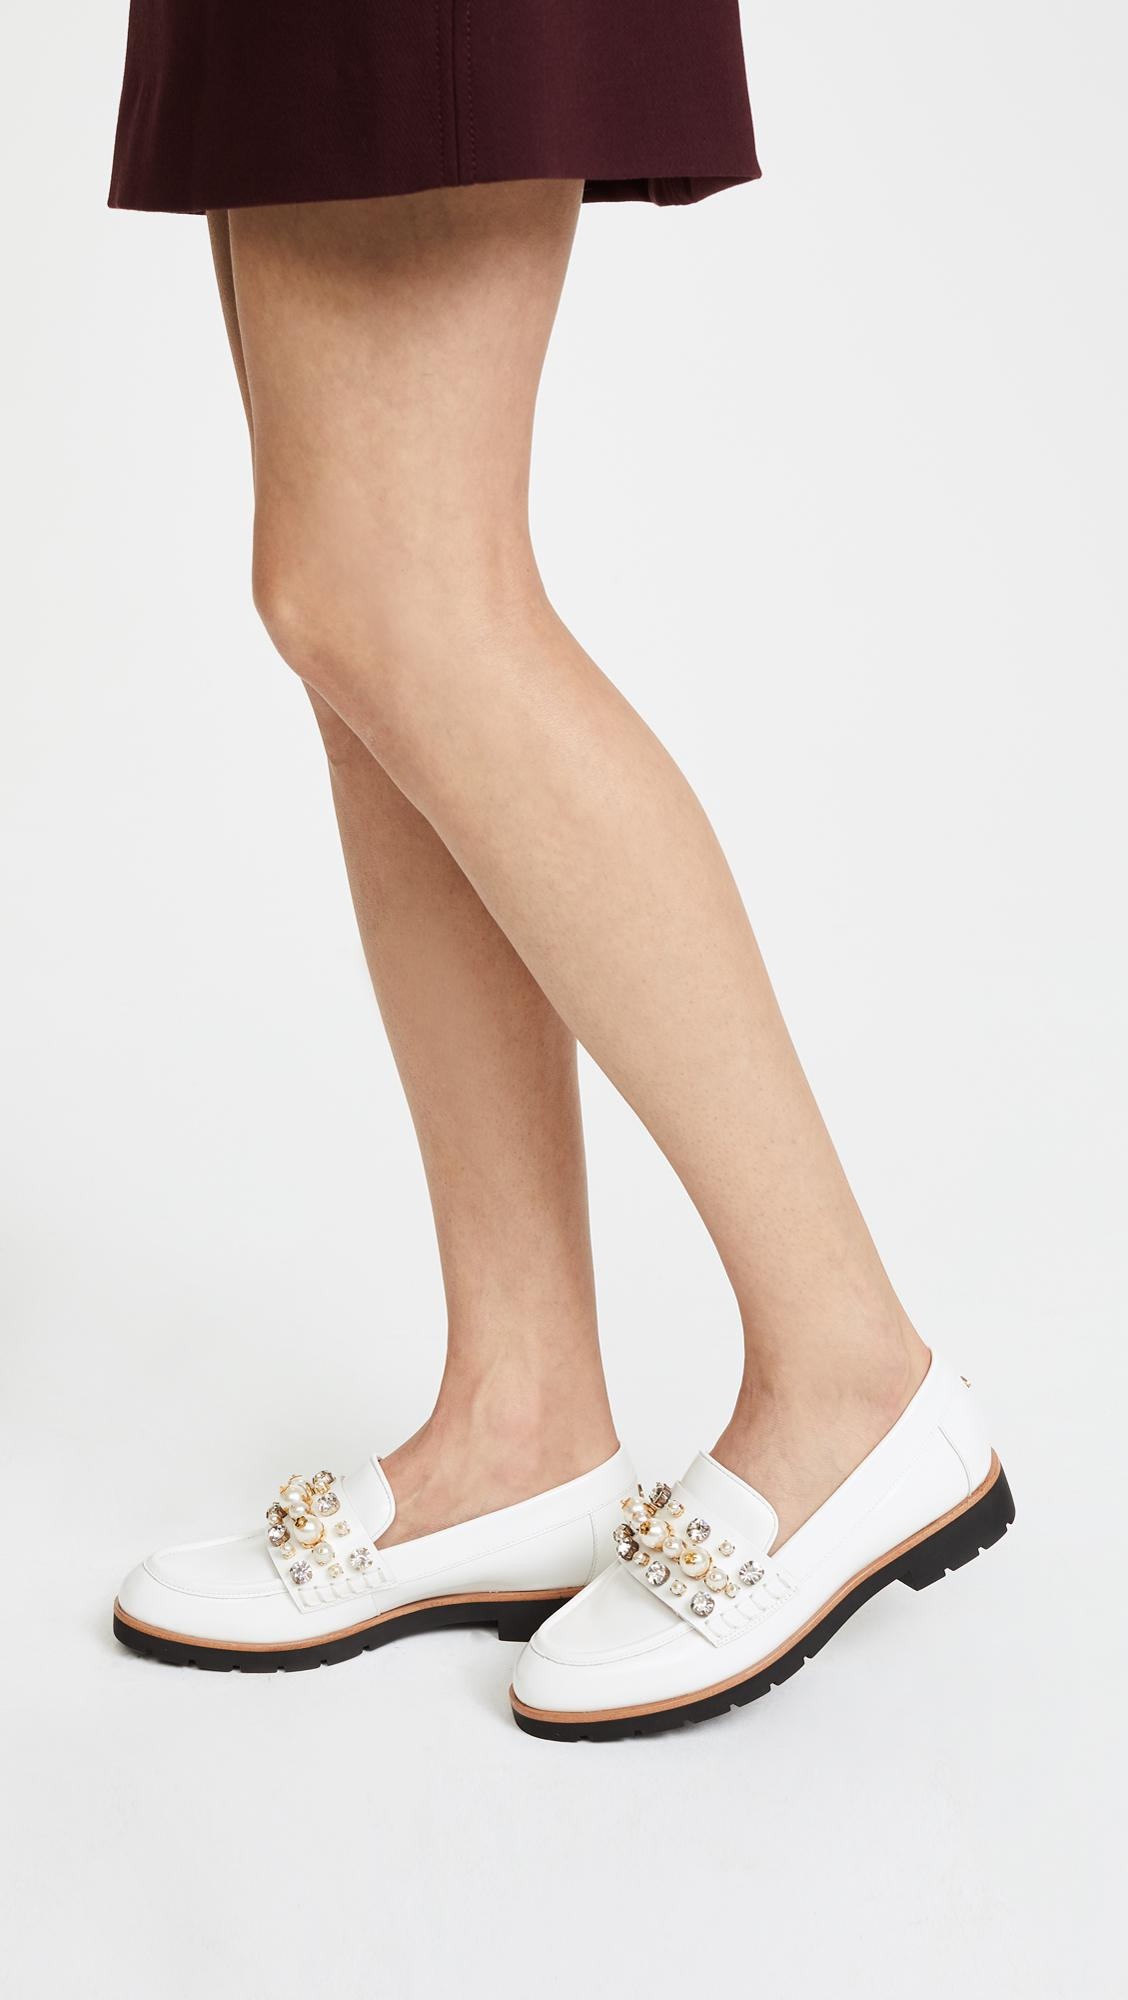 465c1ac2e09 Lyst - Kate Spade Karry Too Studded Loafers in White